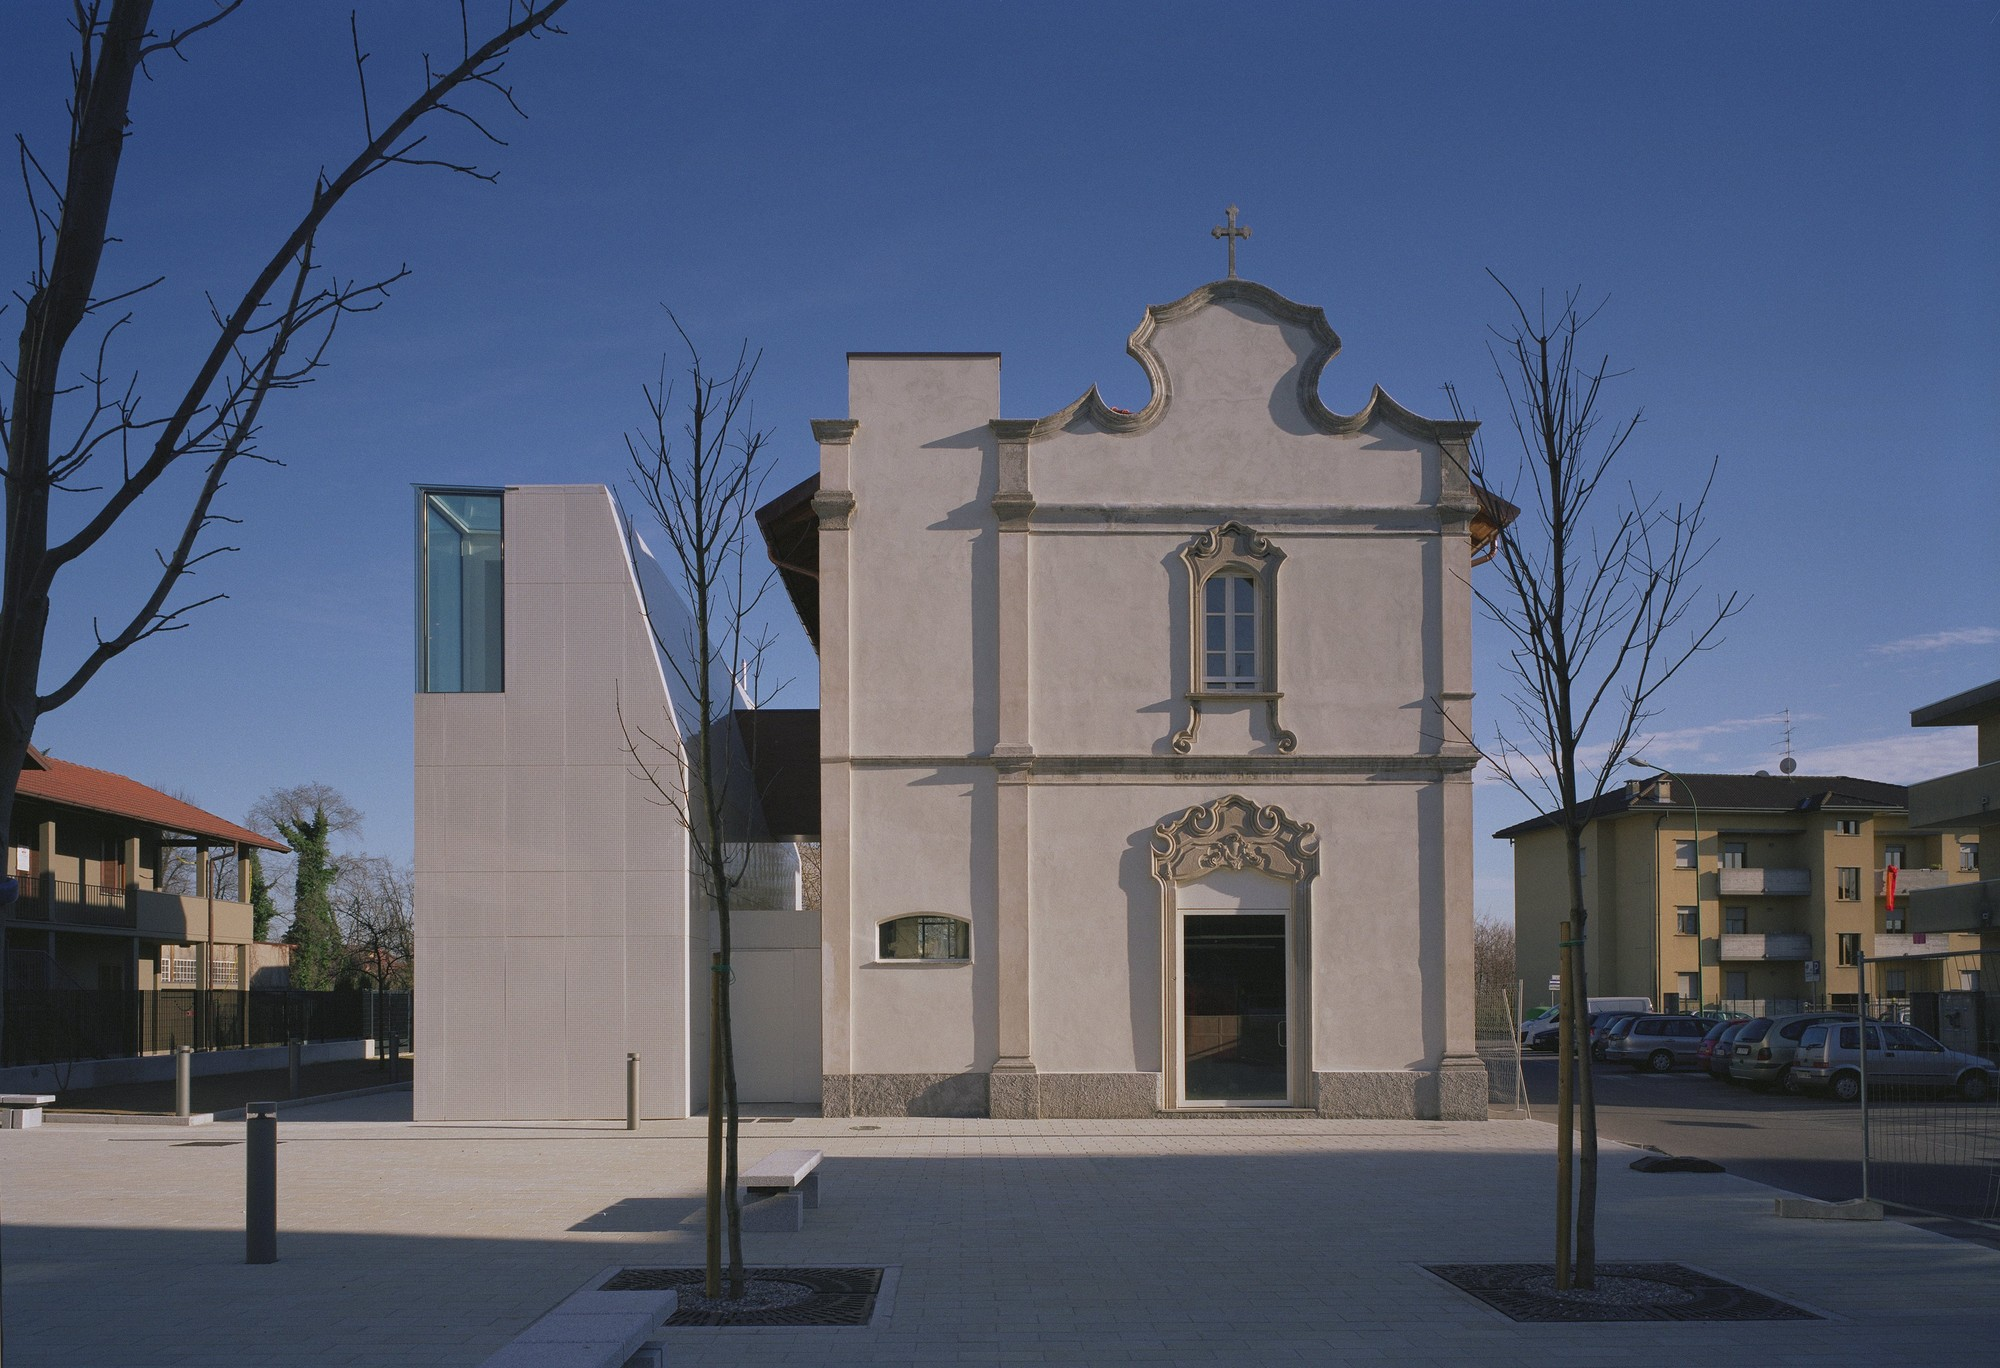 Elsa Morante Public Library / DAP Studio, © Luigi Filetici